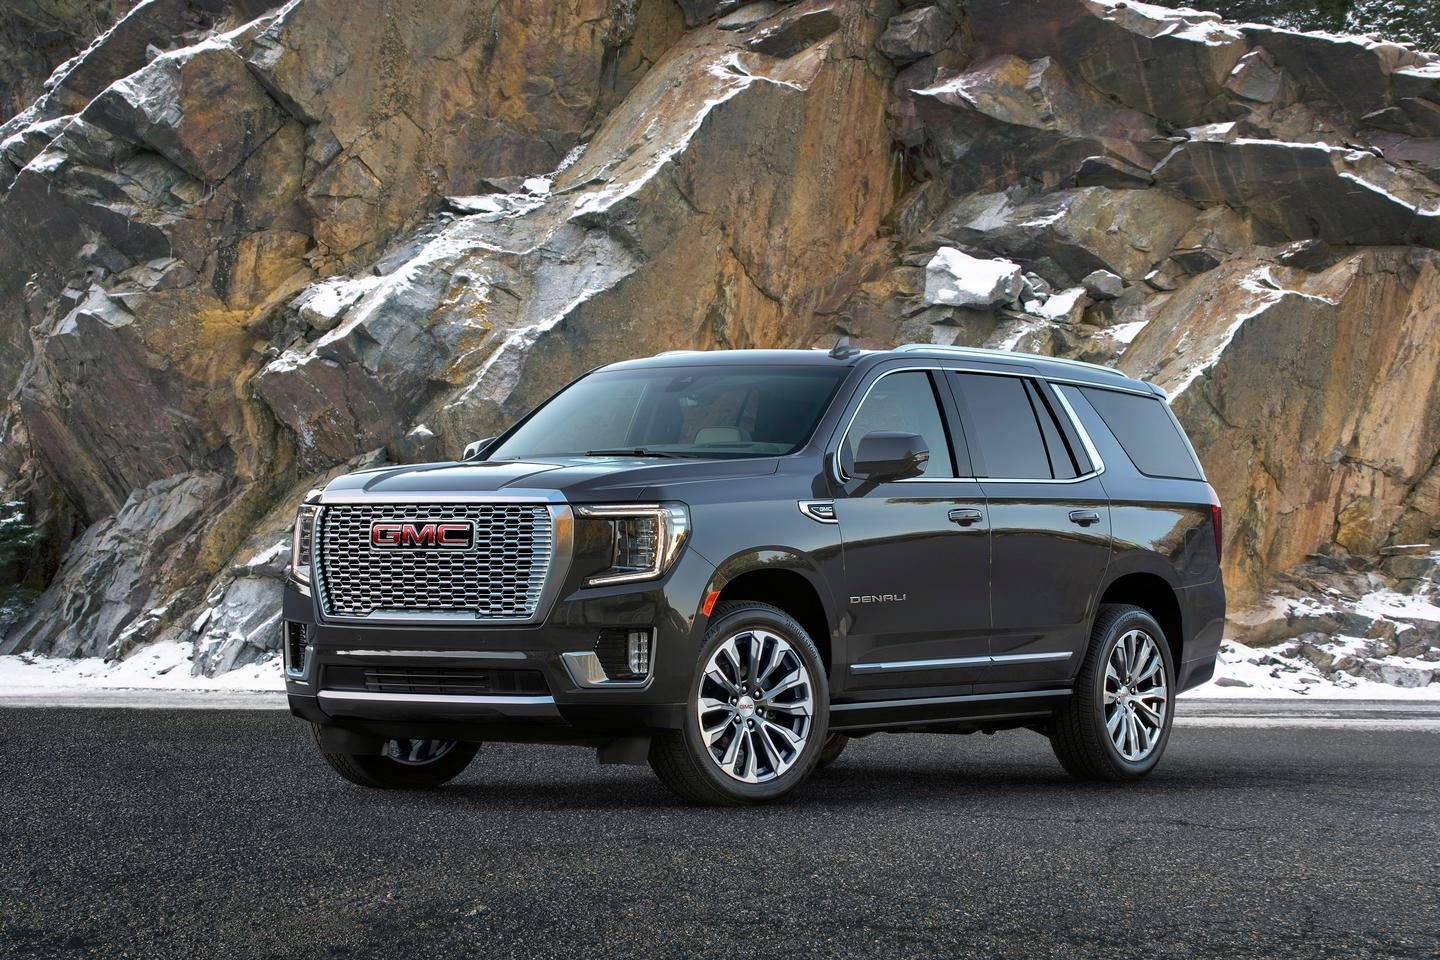 The new GMC Yukon features a bigger size, more space, and a lot of engineering